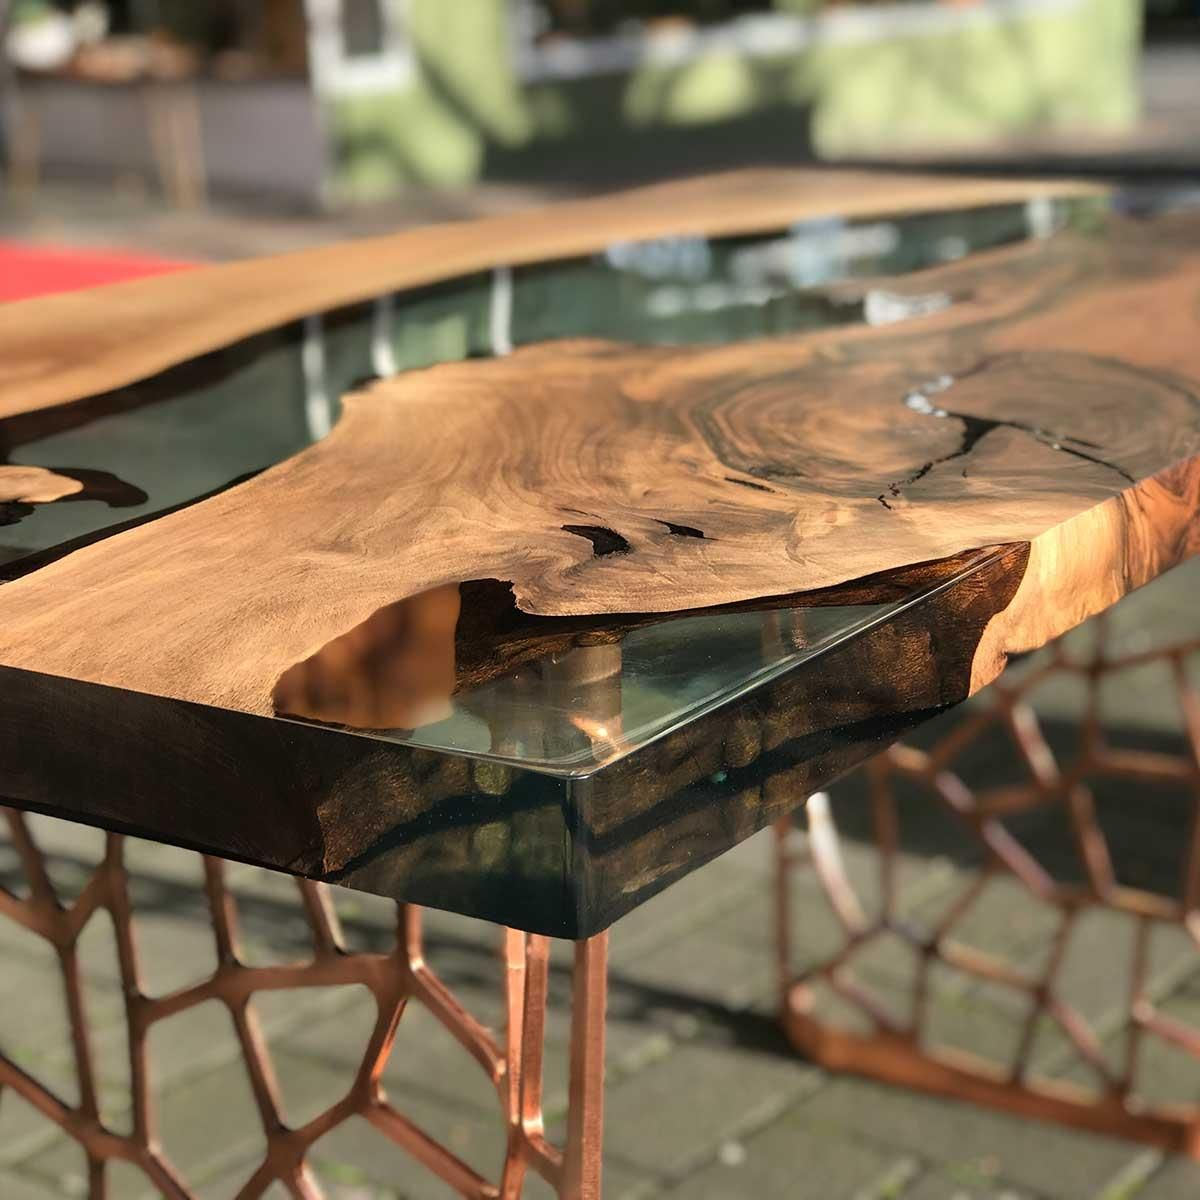 Image Result For Walnut Epoxy Tables Natural Wood Furniture Natural Wood Table Wood Table